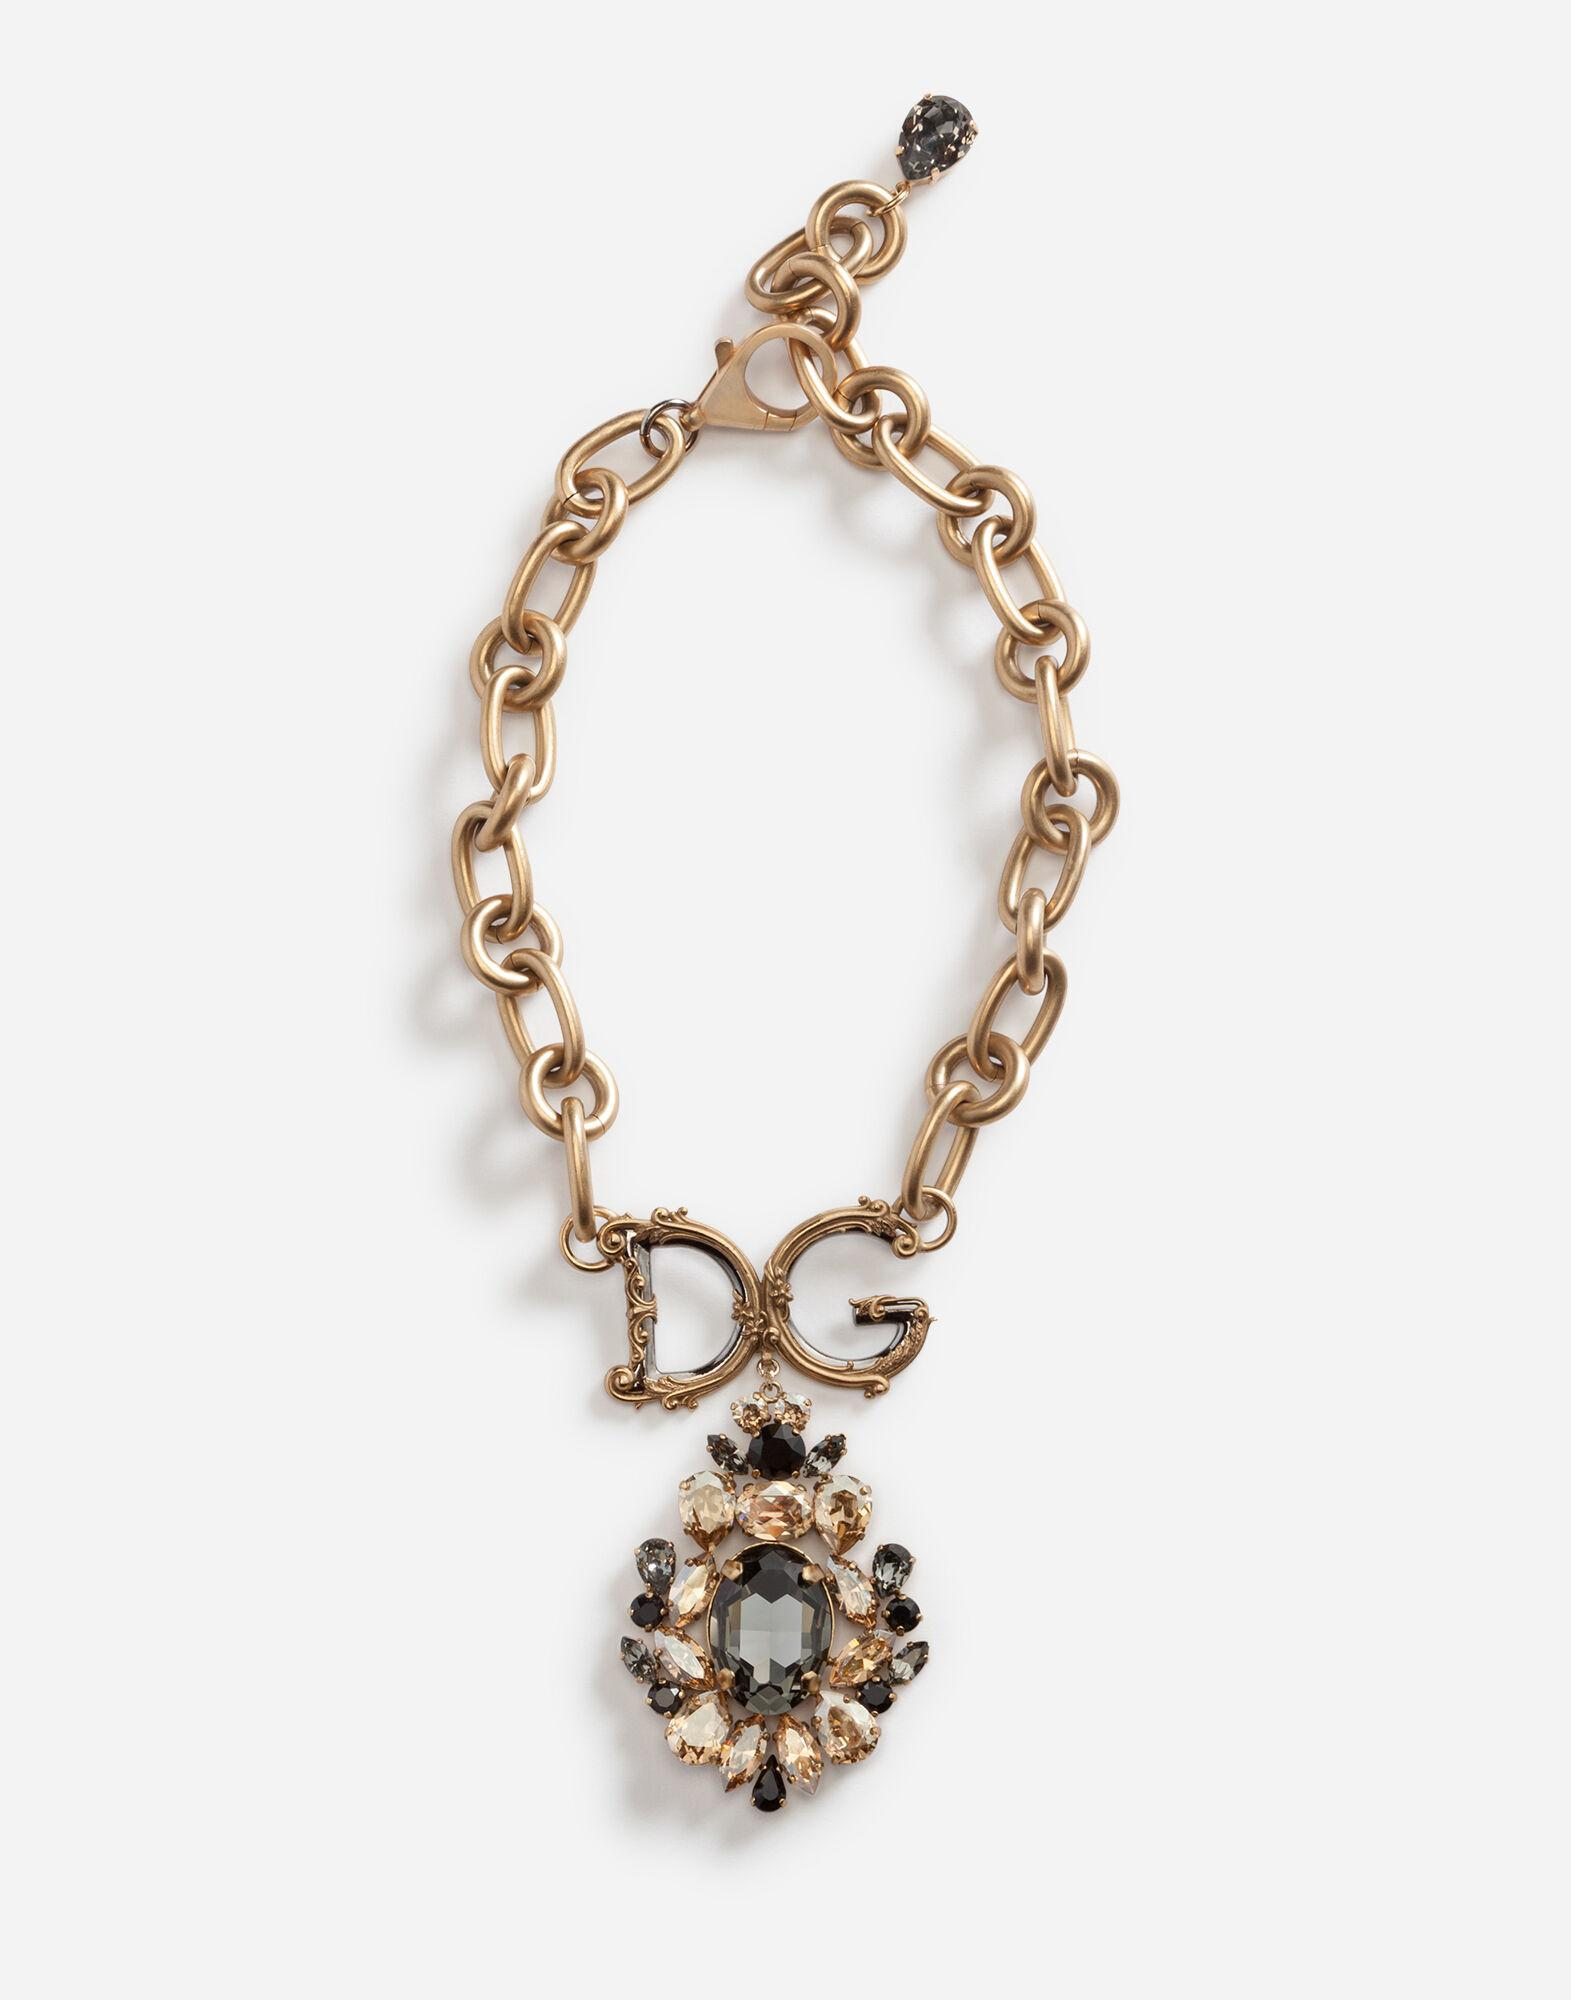 Necklace with decorative elements